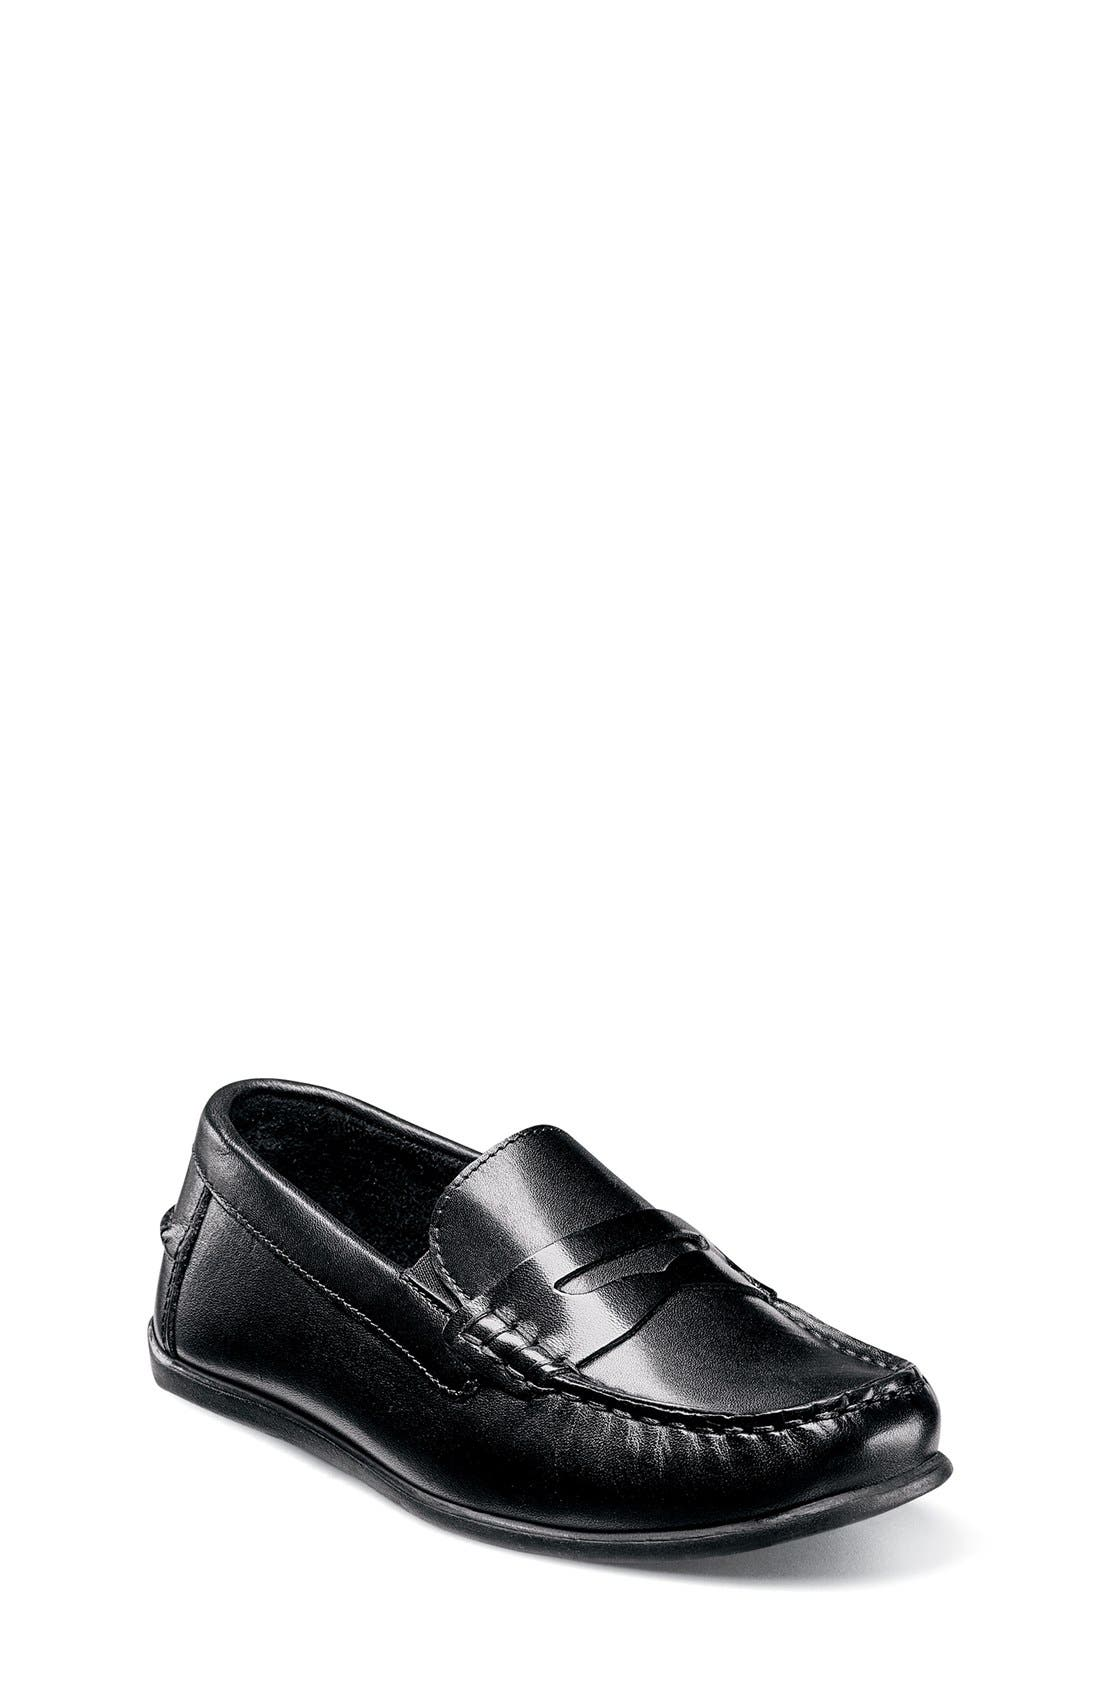 'Jasper - Driver Jr.' Loafer,                         Main,                         color, BLACK LEATHER